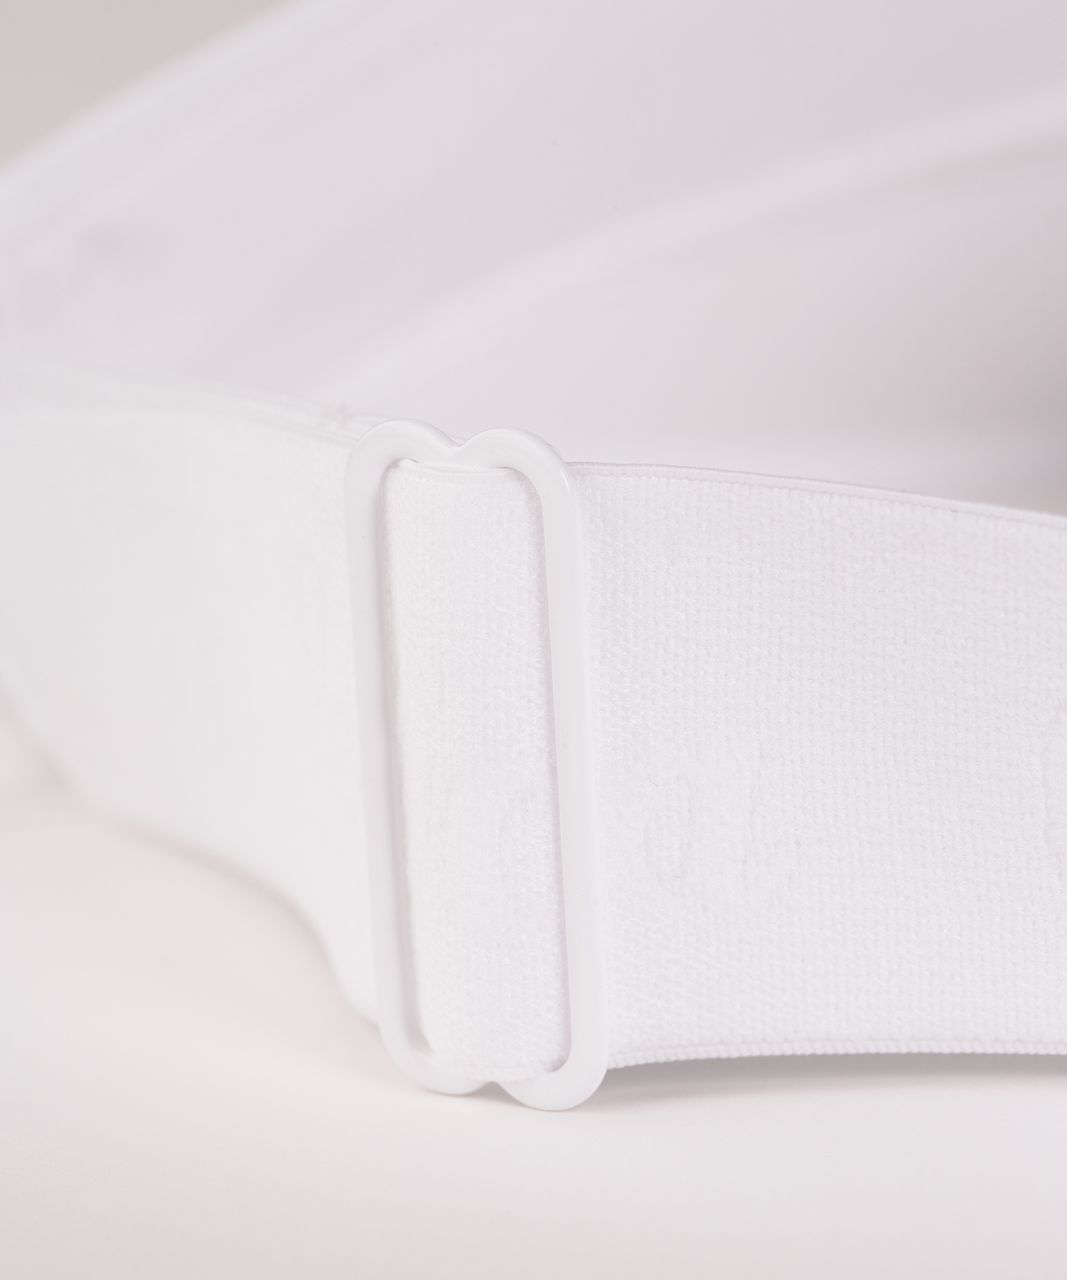 Lululemon Fast Paced Run Visor - White (Fourth Release)